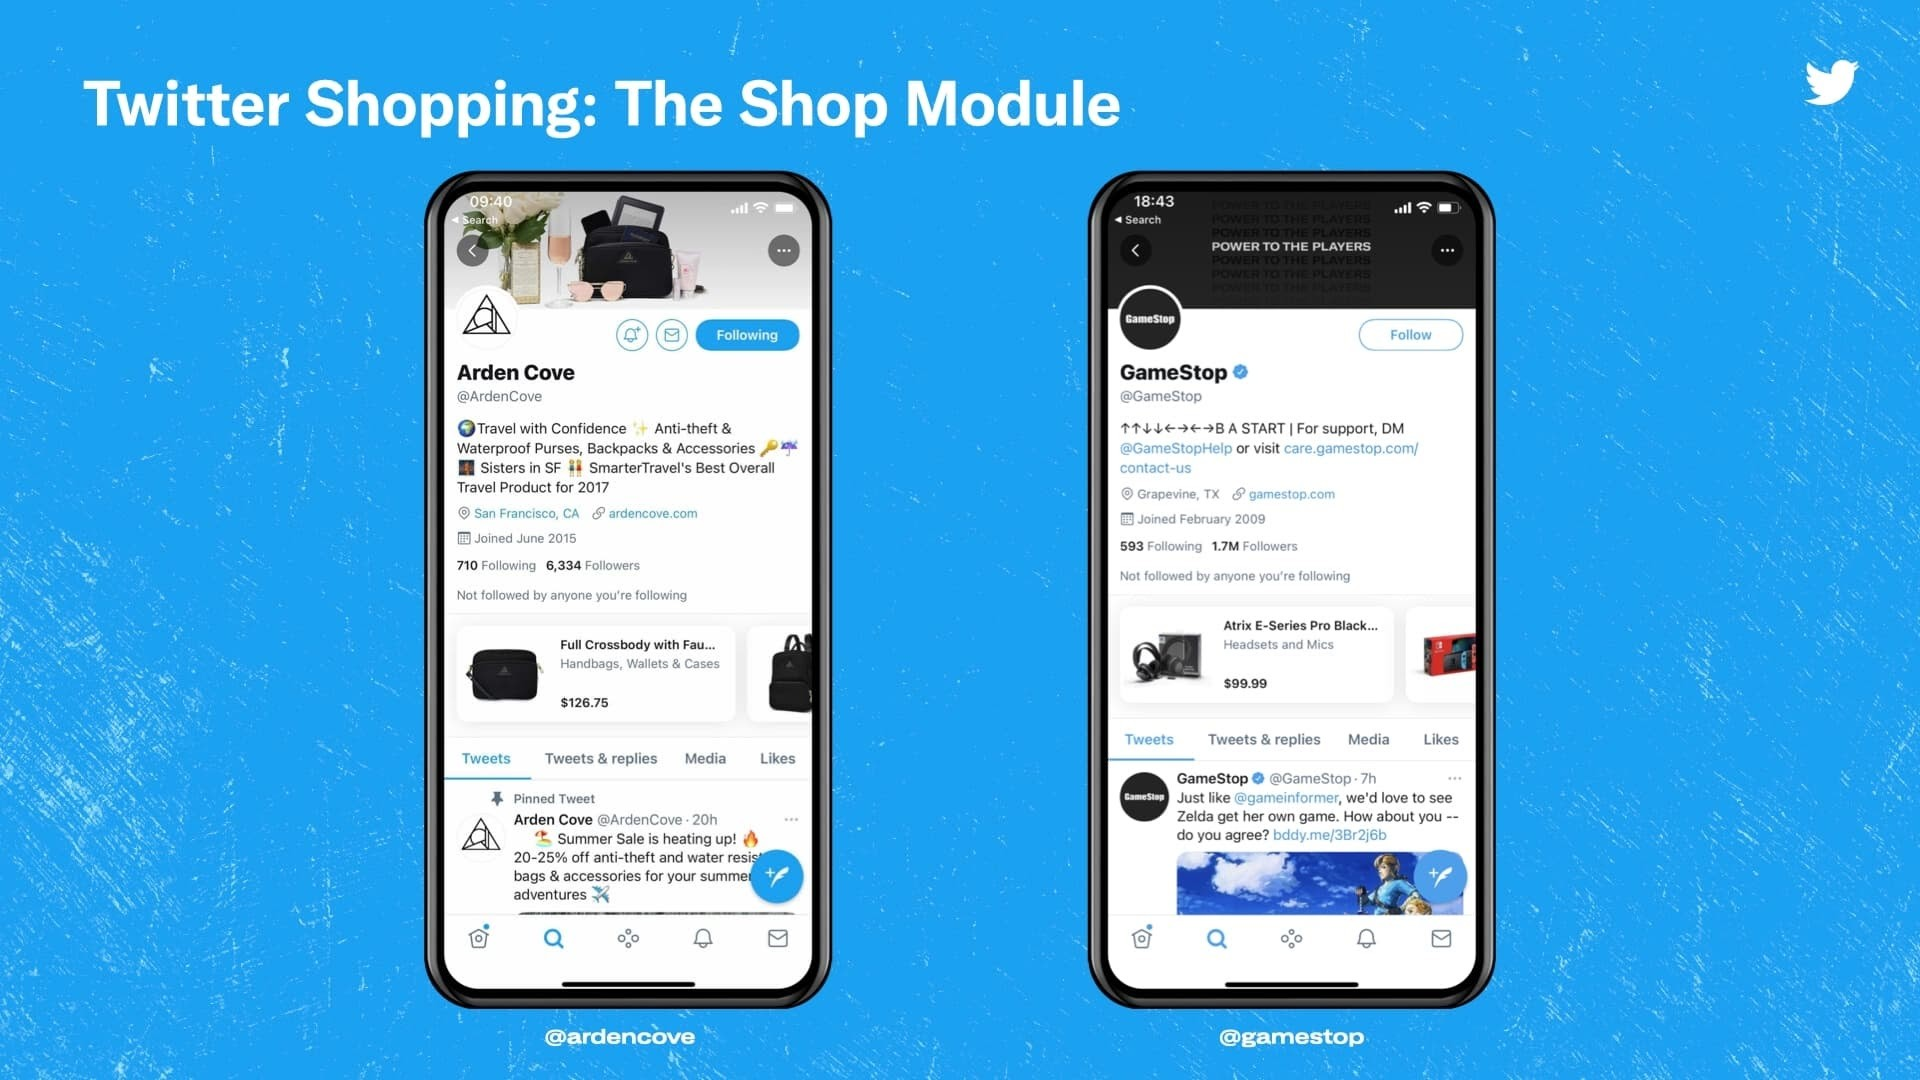 Twitter's announcement of The Shop Module